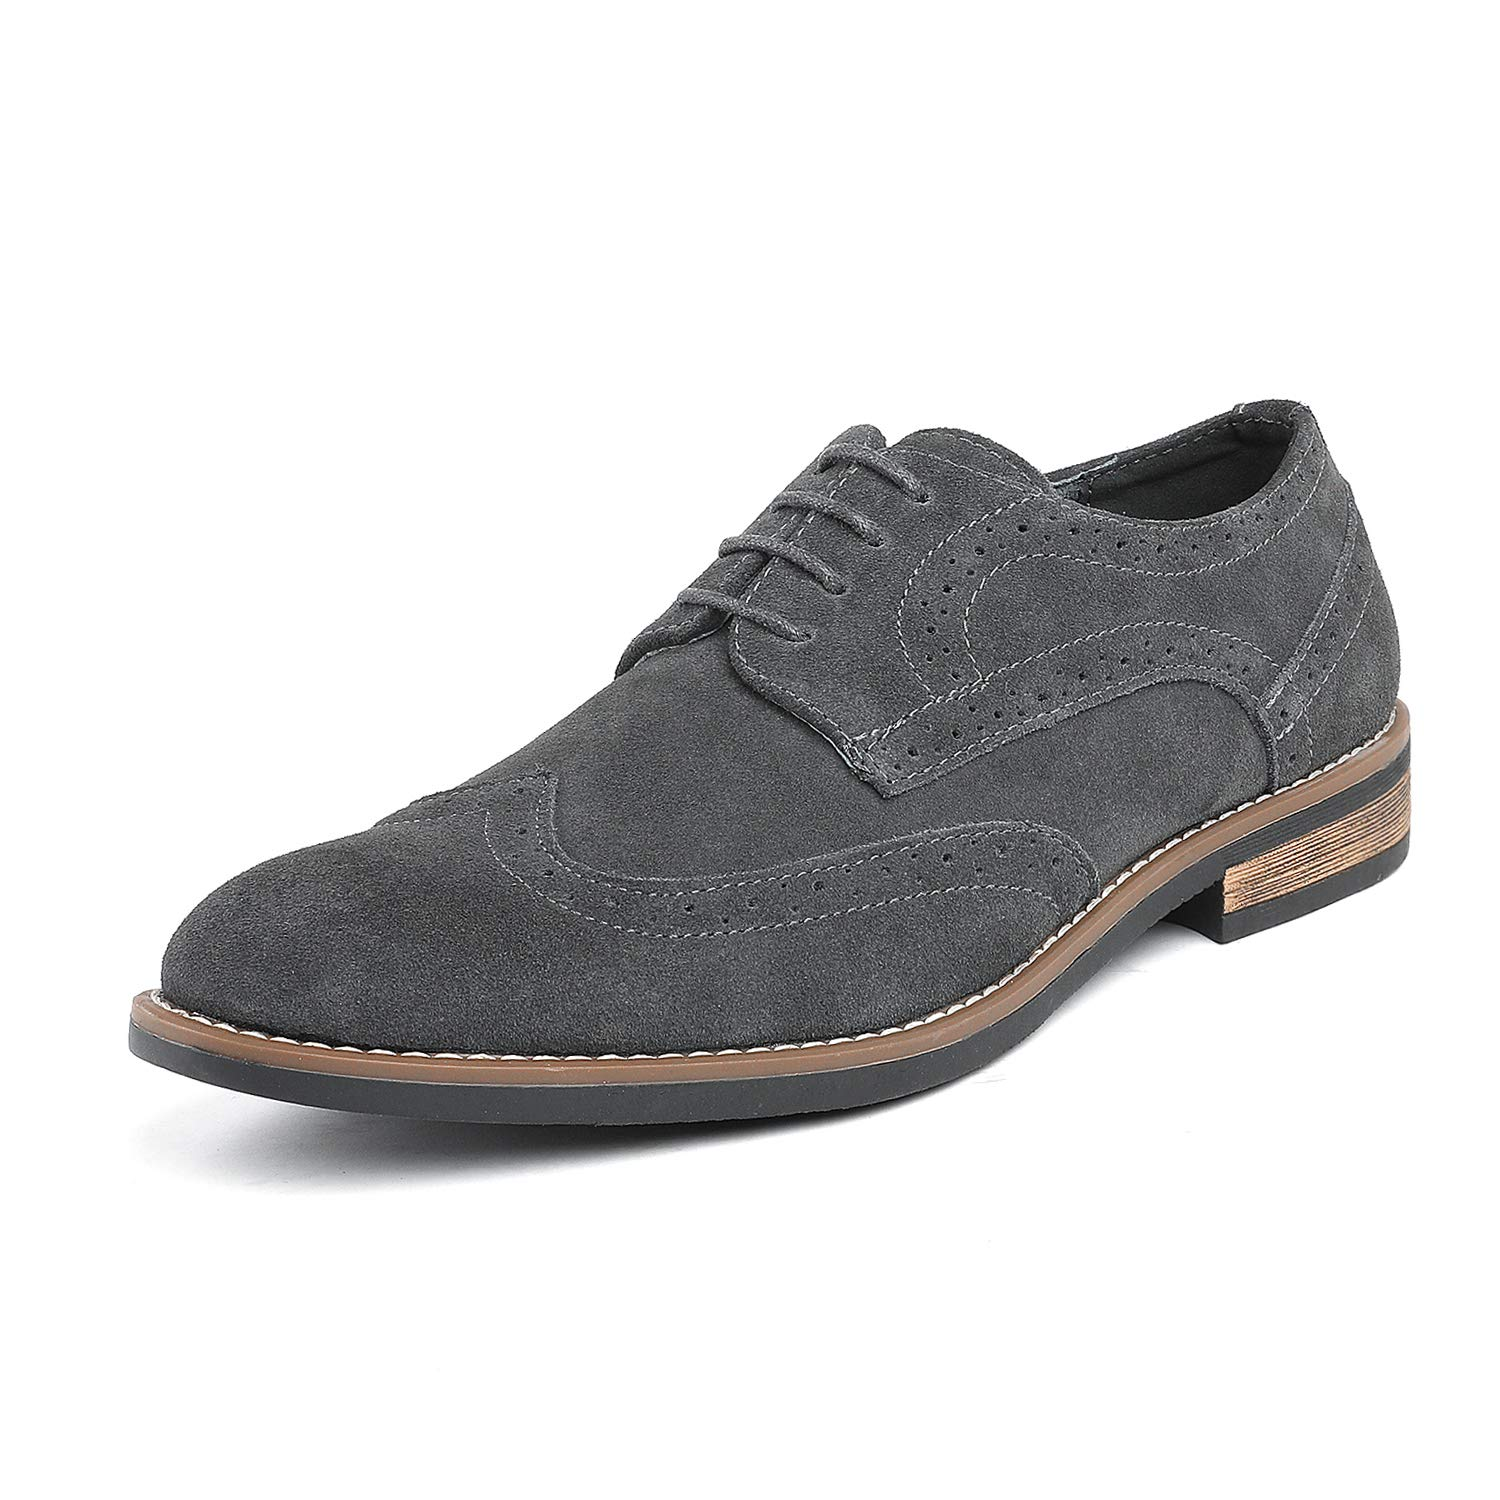 aec26c654f3 Best Rated in Men's Oxfords & Helpful Customer Reviews - Amazon.com